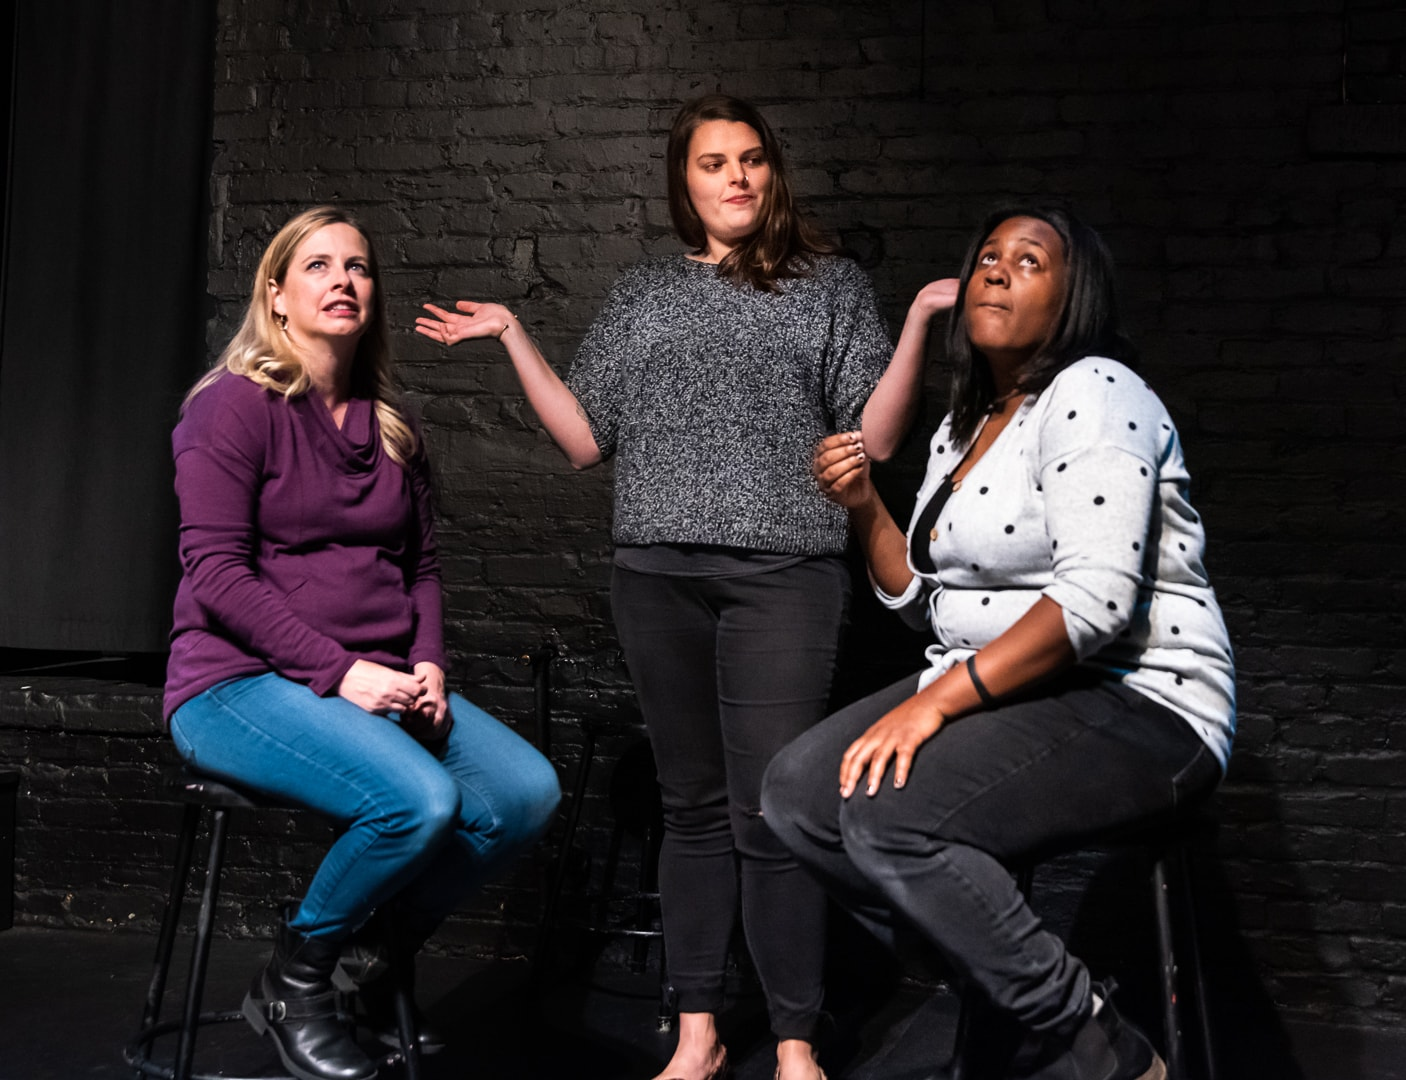 Molly Murchie, Donna Steele, and Krystal Ramseur perform with Washington Improv Theater's Hellcat. Photo by Jeff Salmore.